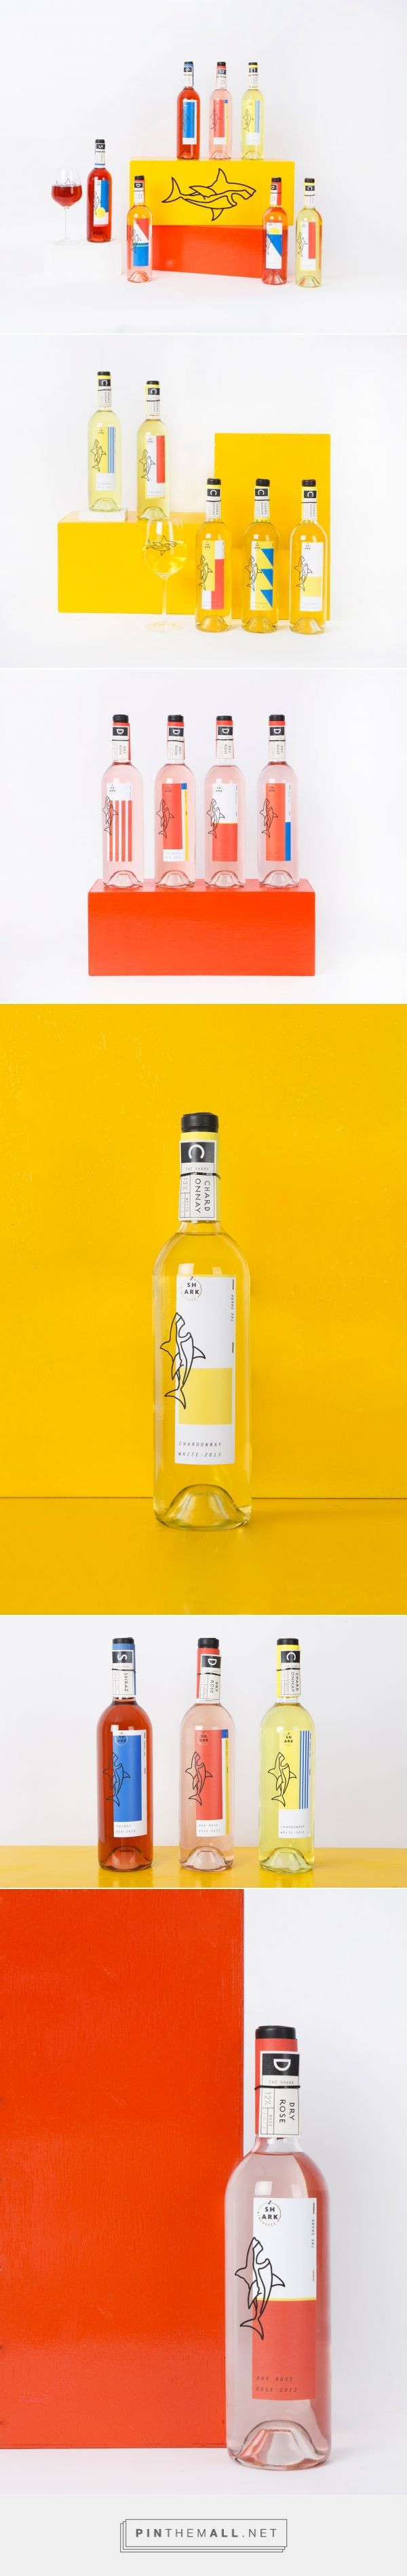 The Shark Wine Packaging by Ahra Song | Fivestar Branding Agency – Design and Branding Agency & Curated Inspiration Gallery